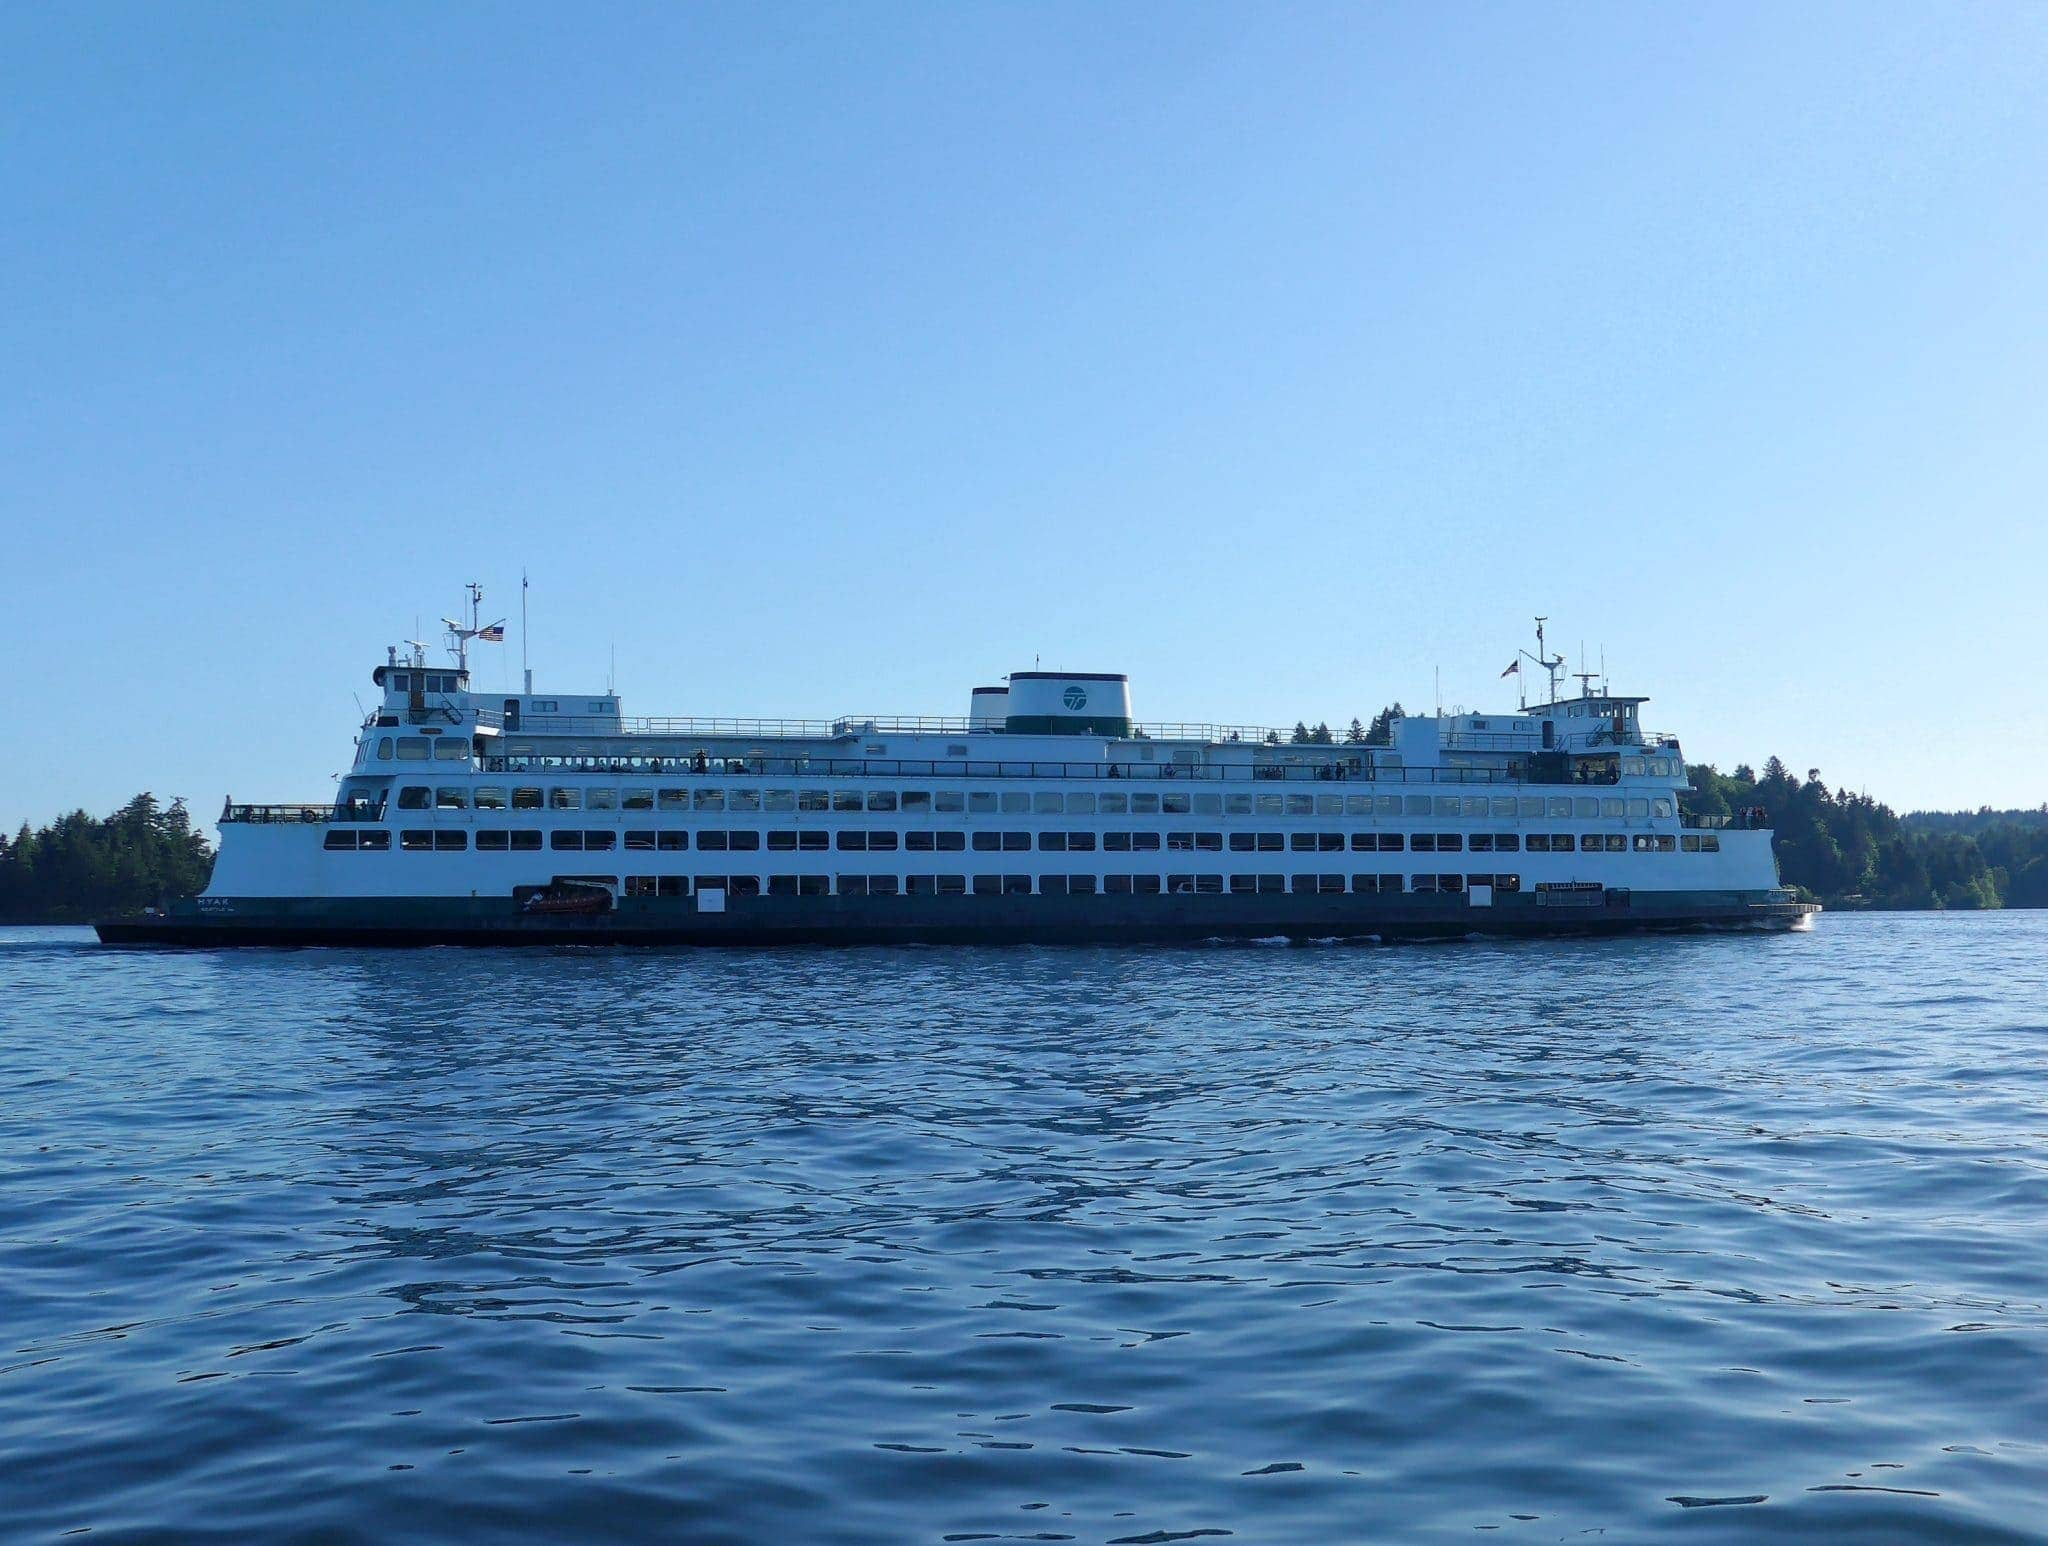 WSF Hyak at Orchard Point headed to Bremerton through Rich Passage